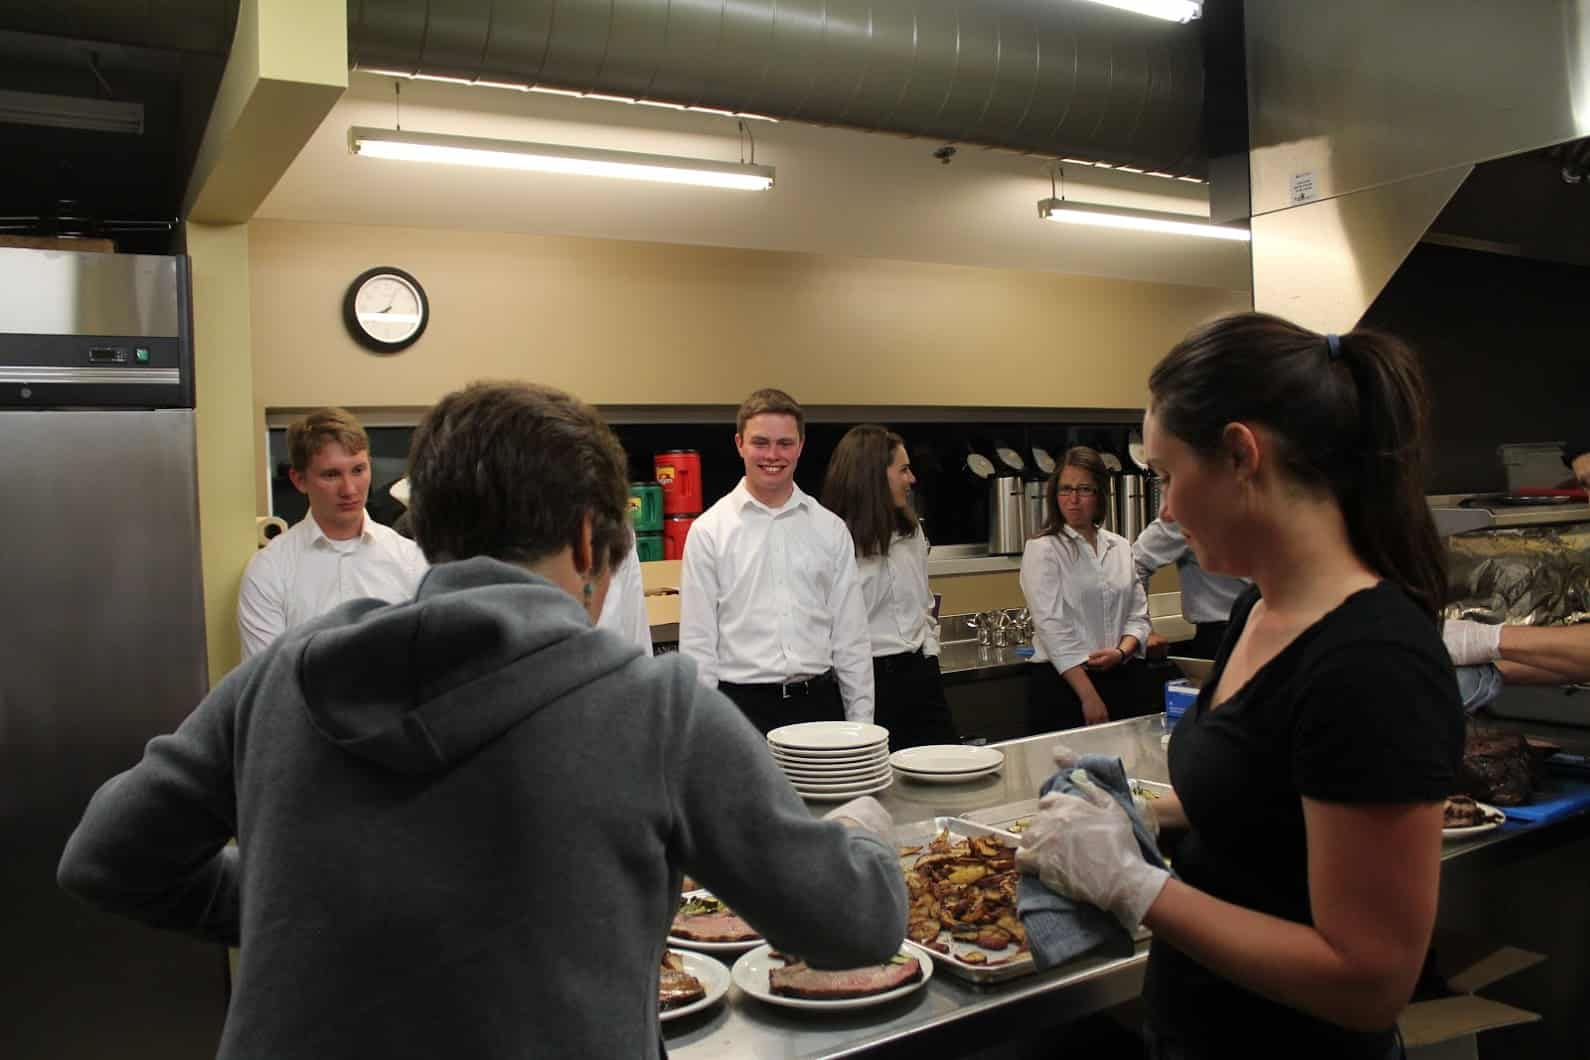 Students at Colorado School of Mines prepare to serve dinner to alumni members of the community. Professor Darrin Muggli also gave a talk on the importance of being a well-formed Catholic engineer. Photo provided.